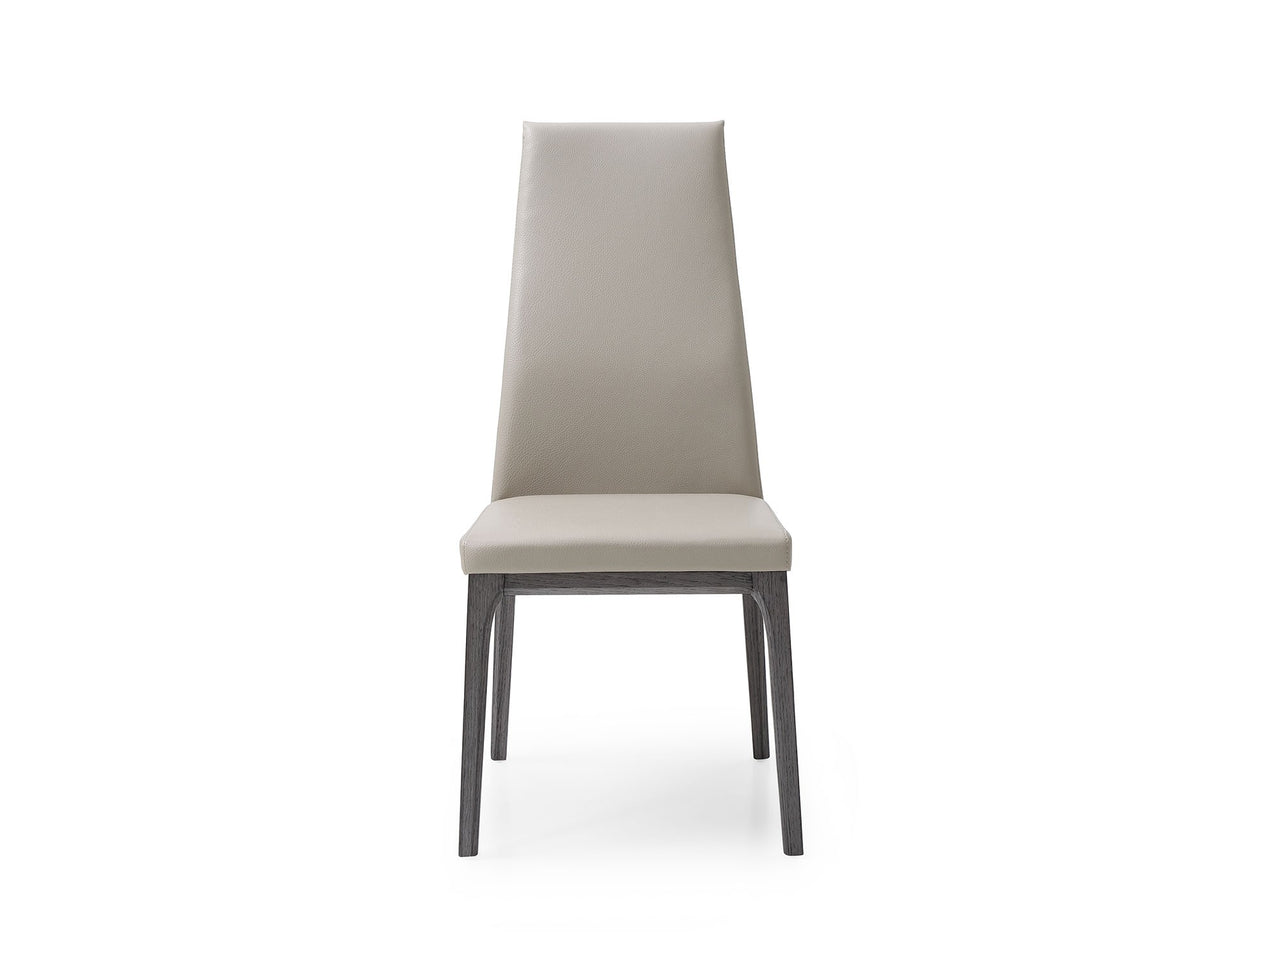 Ricardo Gray Oak / Taupe Dining Chair